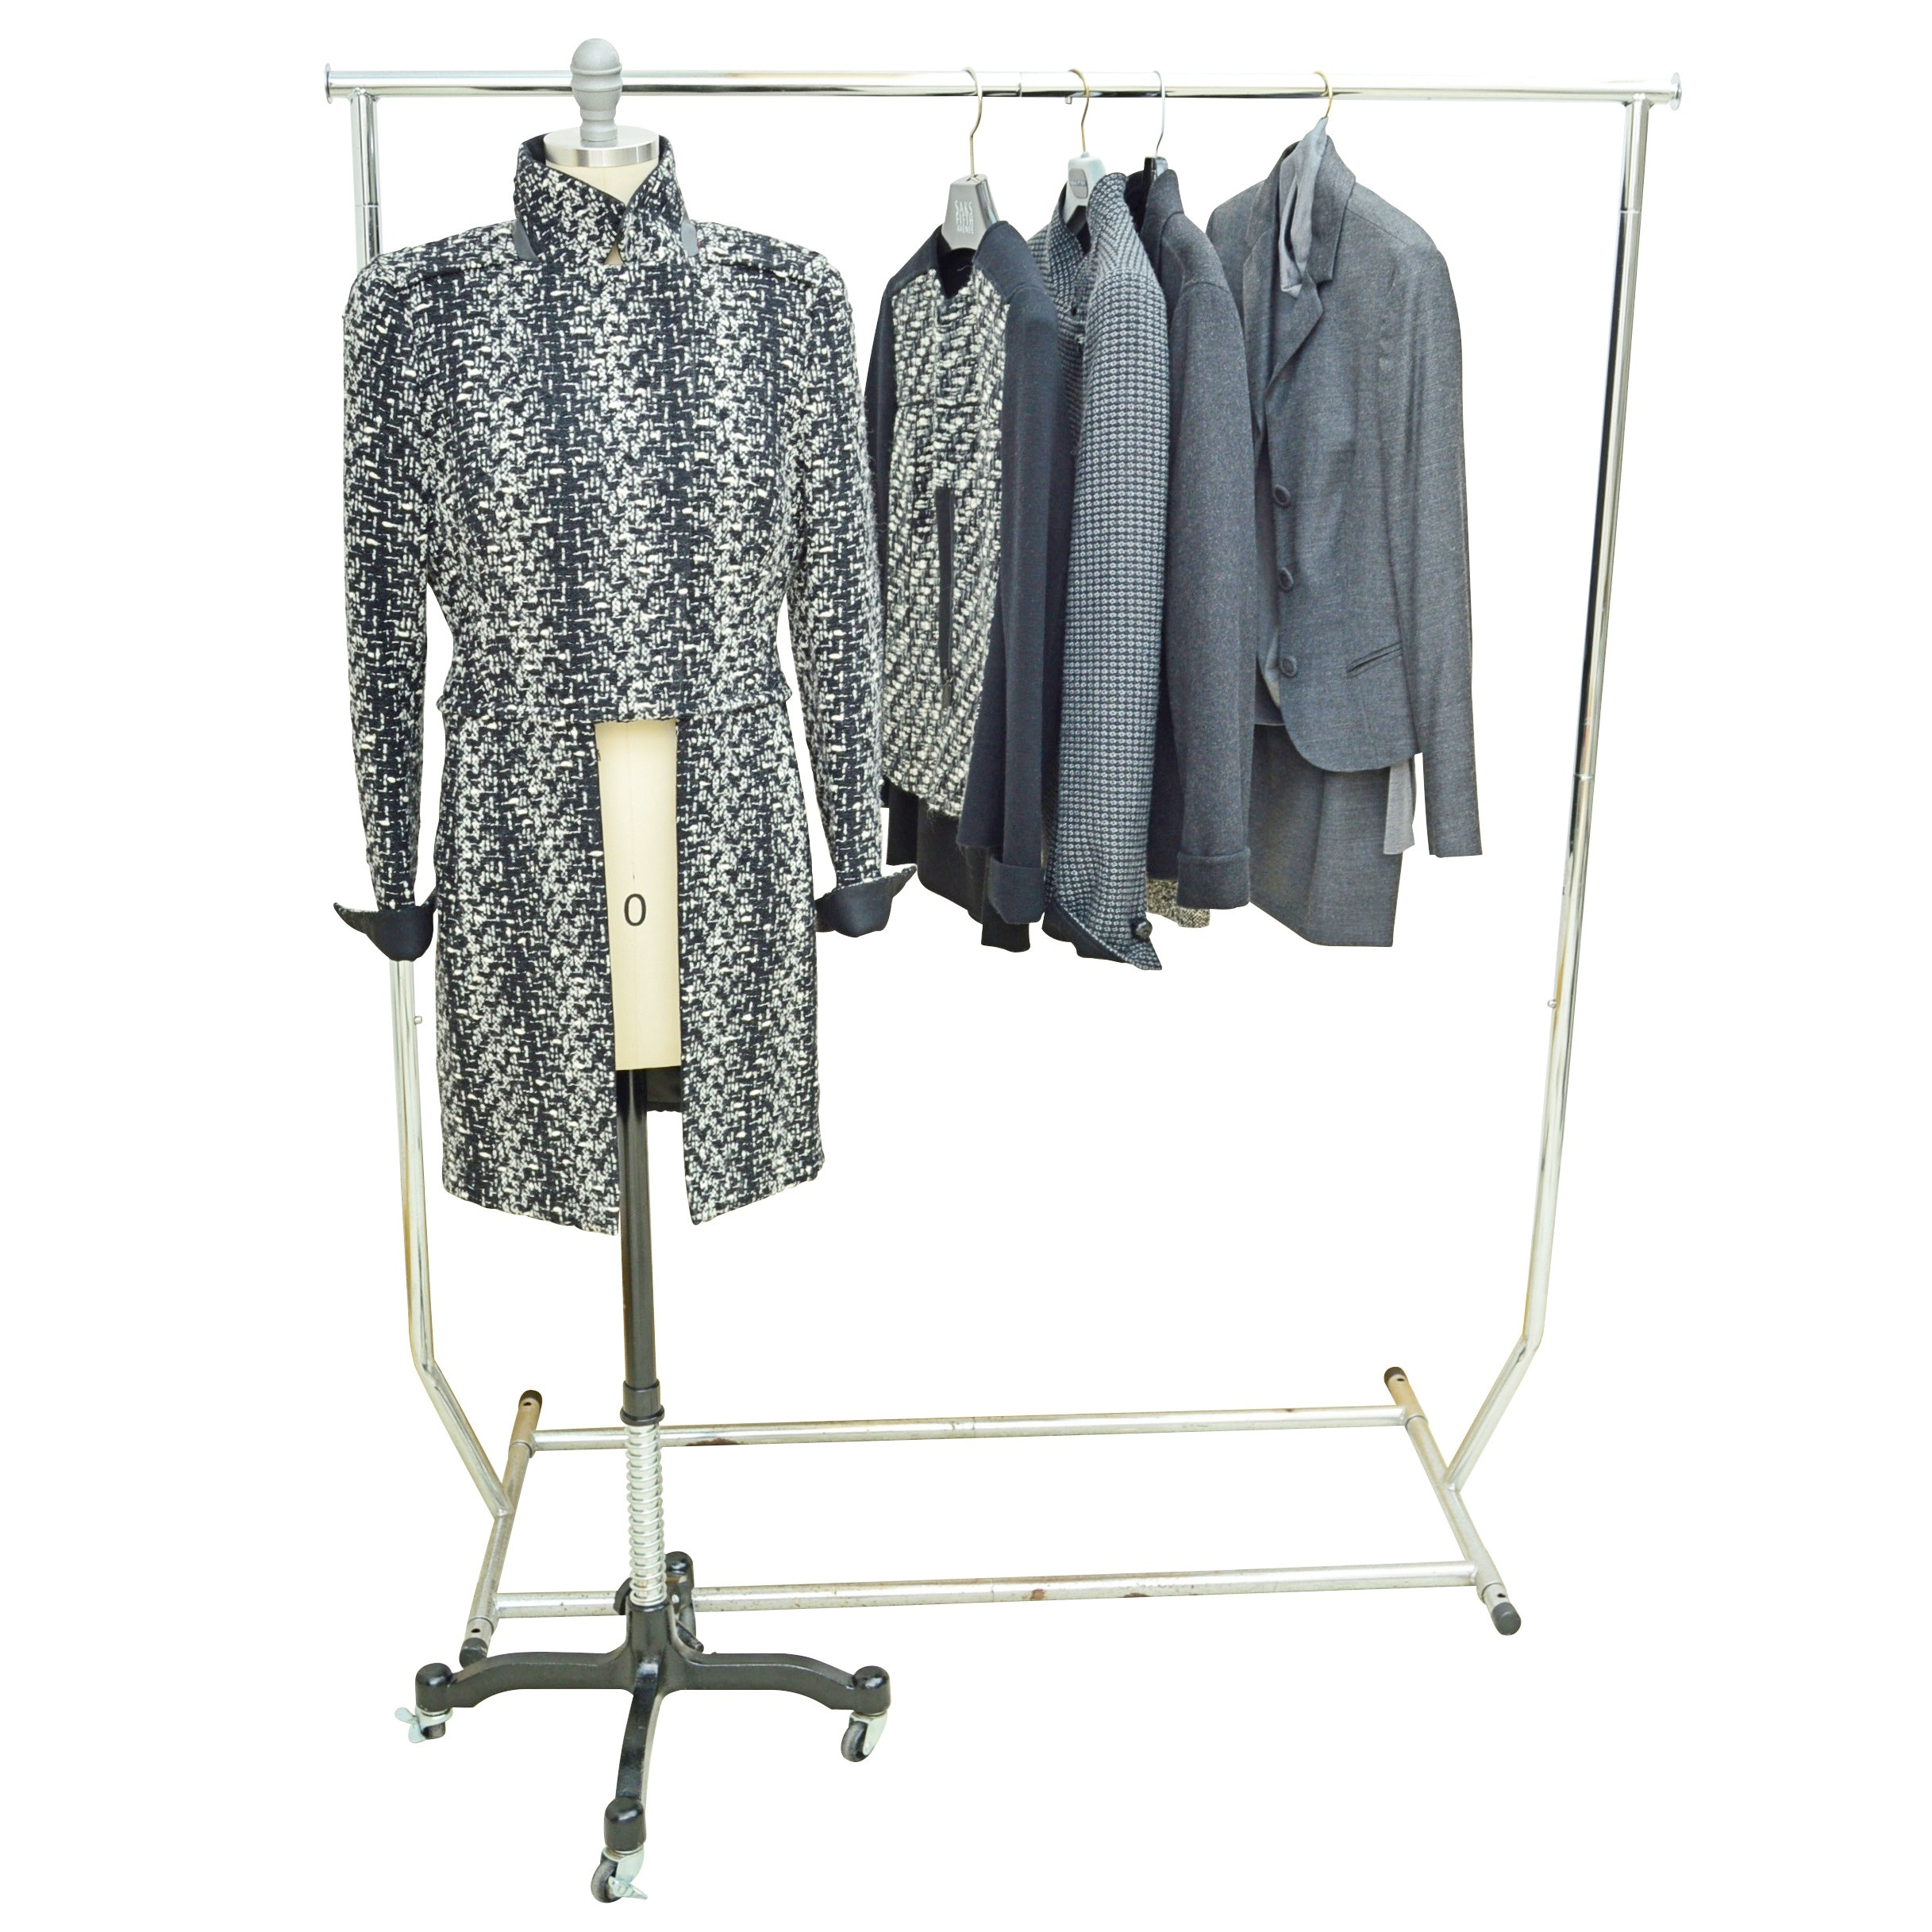 Women's Jackets and Skirt Suits with Akris, Armani, Escada, Les Copains